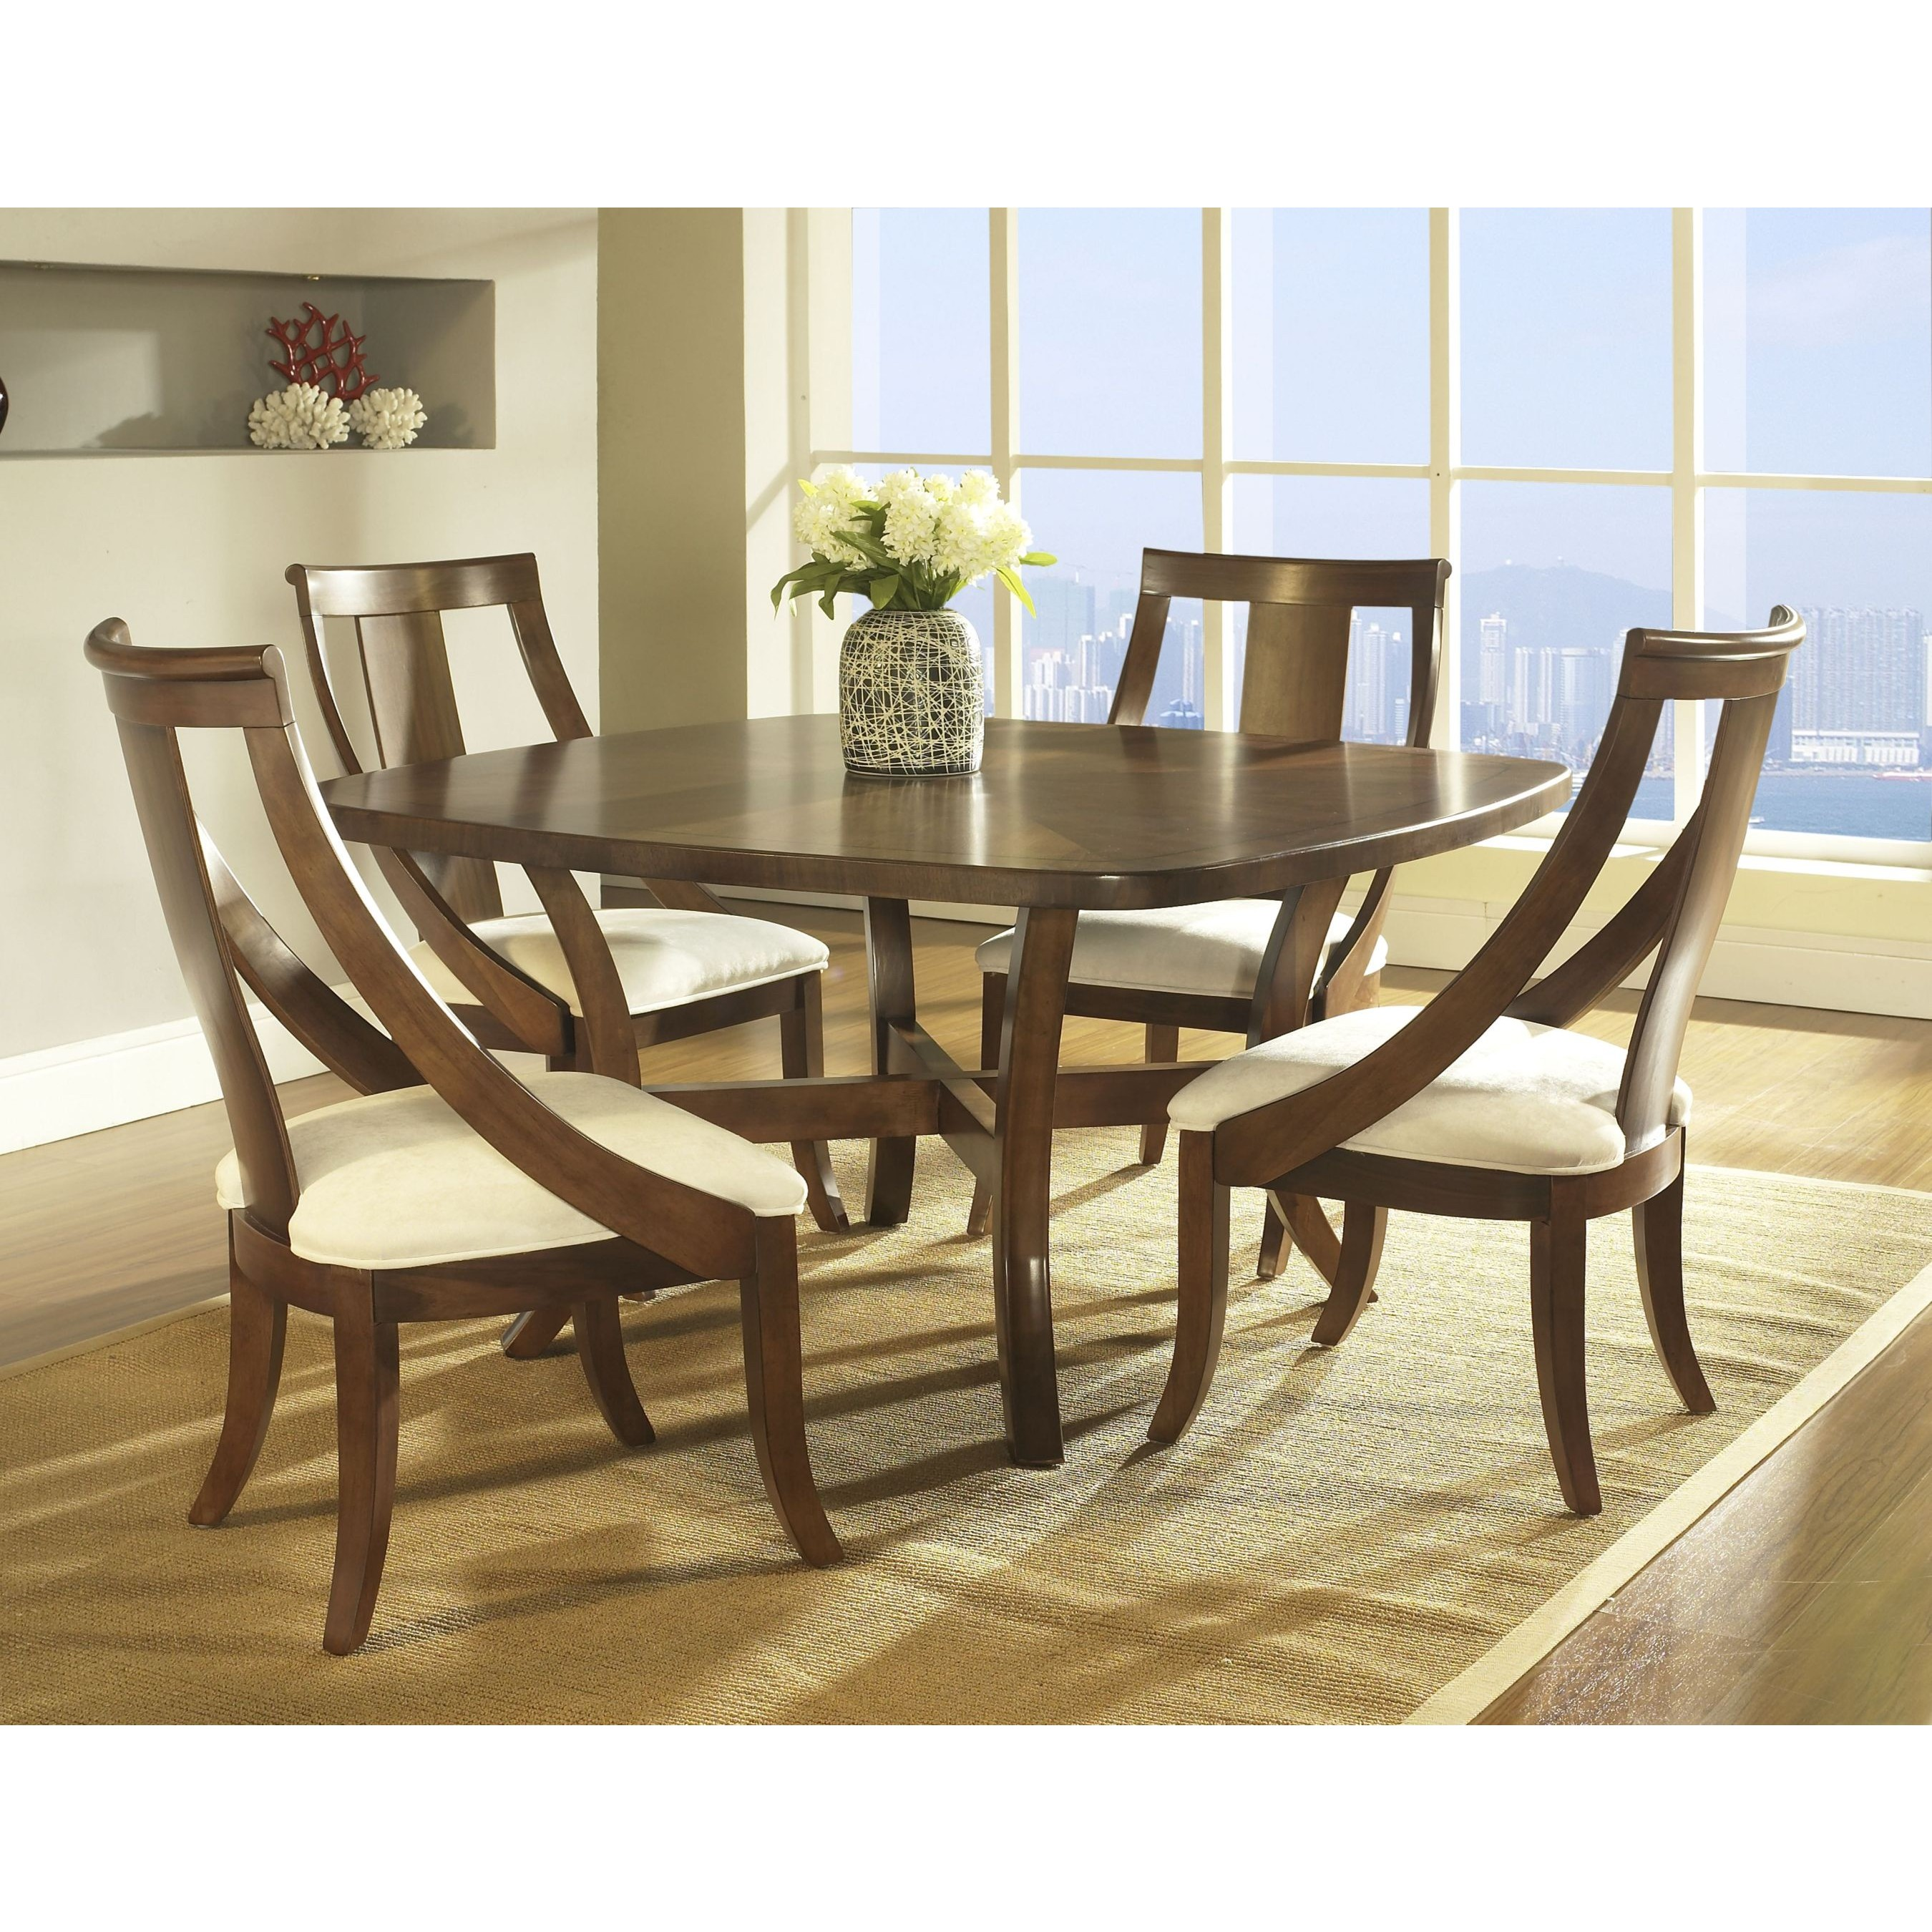 Dining Room Tables Chairs: Square Dining Table For 4